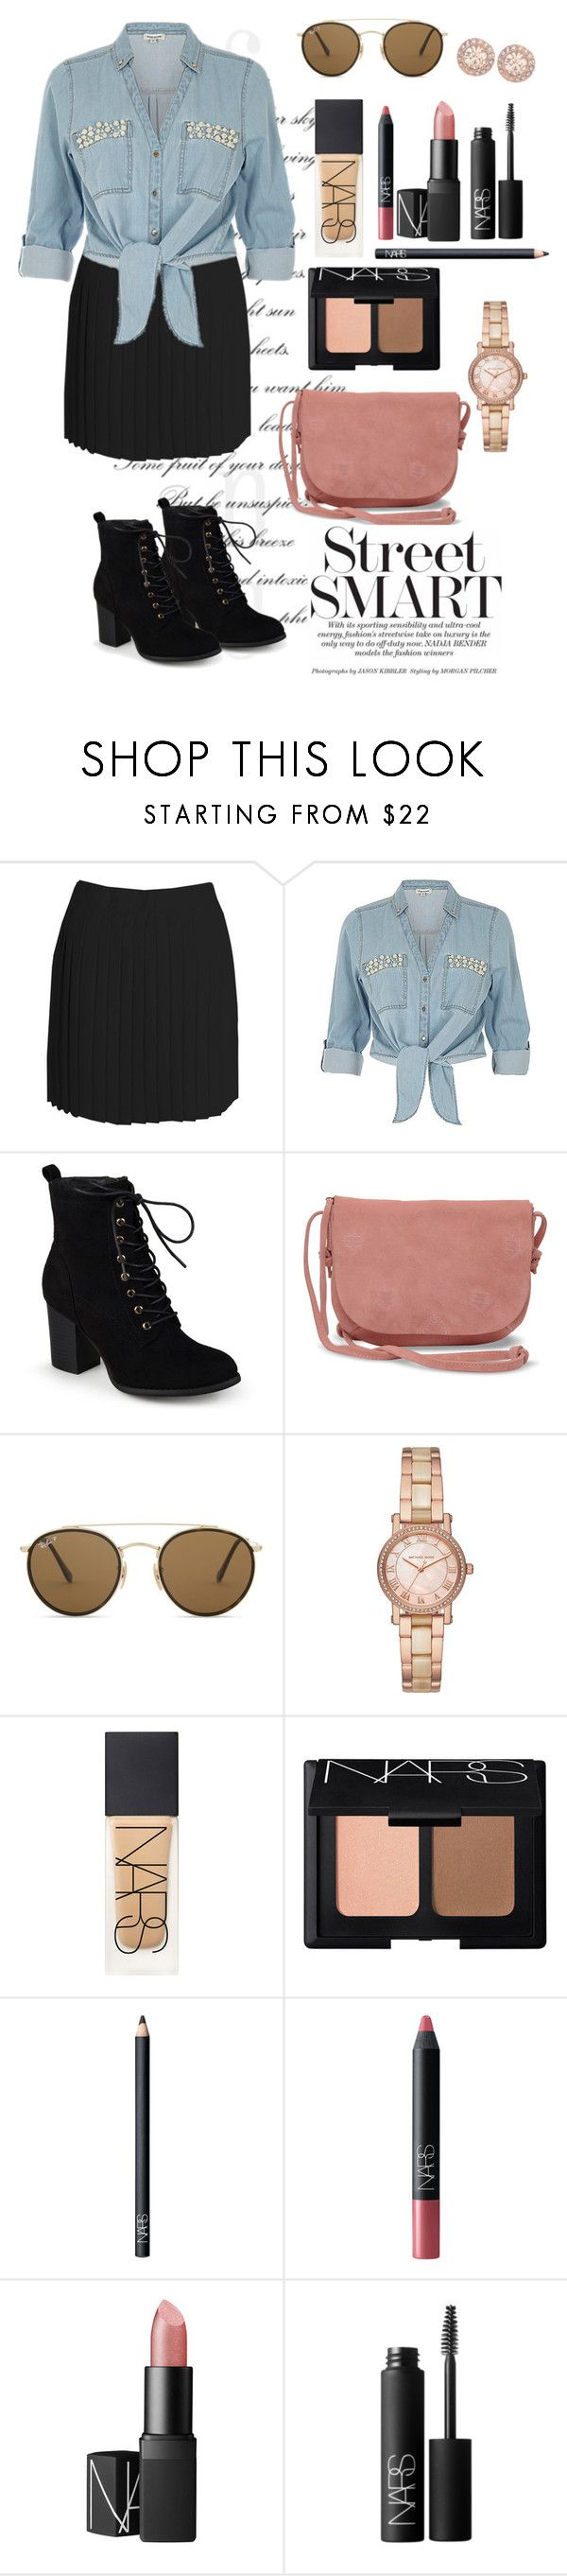 """""""May 8, 2017"""" by blueroses-1 on Polyvore featuring Boohoo, ZAK, Journee Collection, TOMS, Ray-Ban, Michael Kors, NARS Cosmetics and Givenchy"""